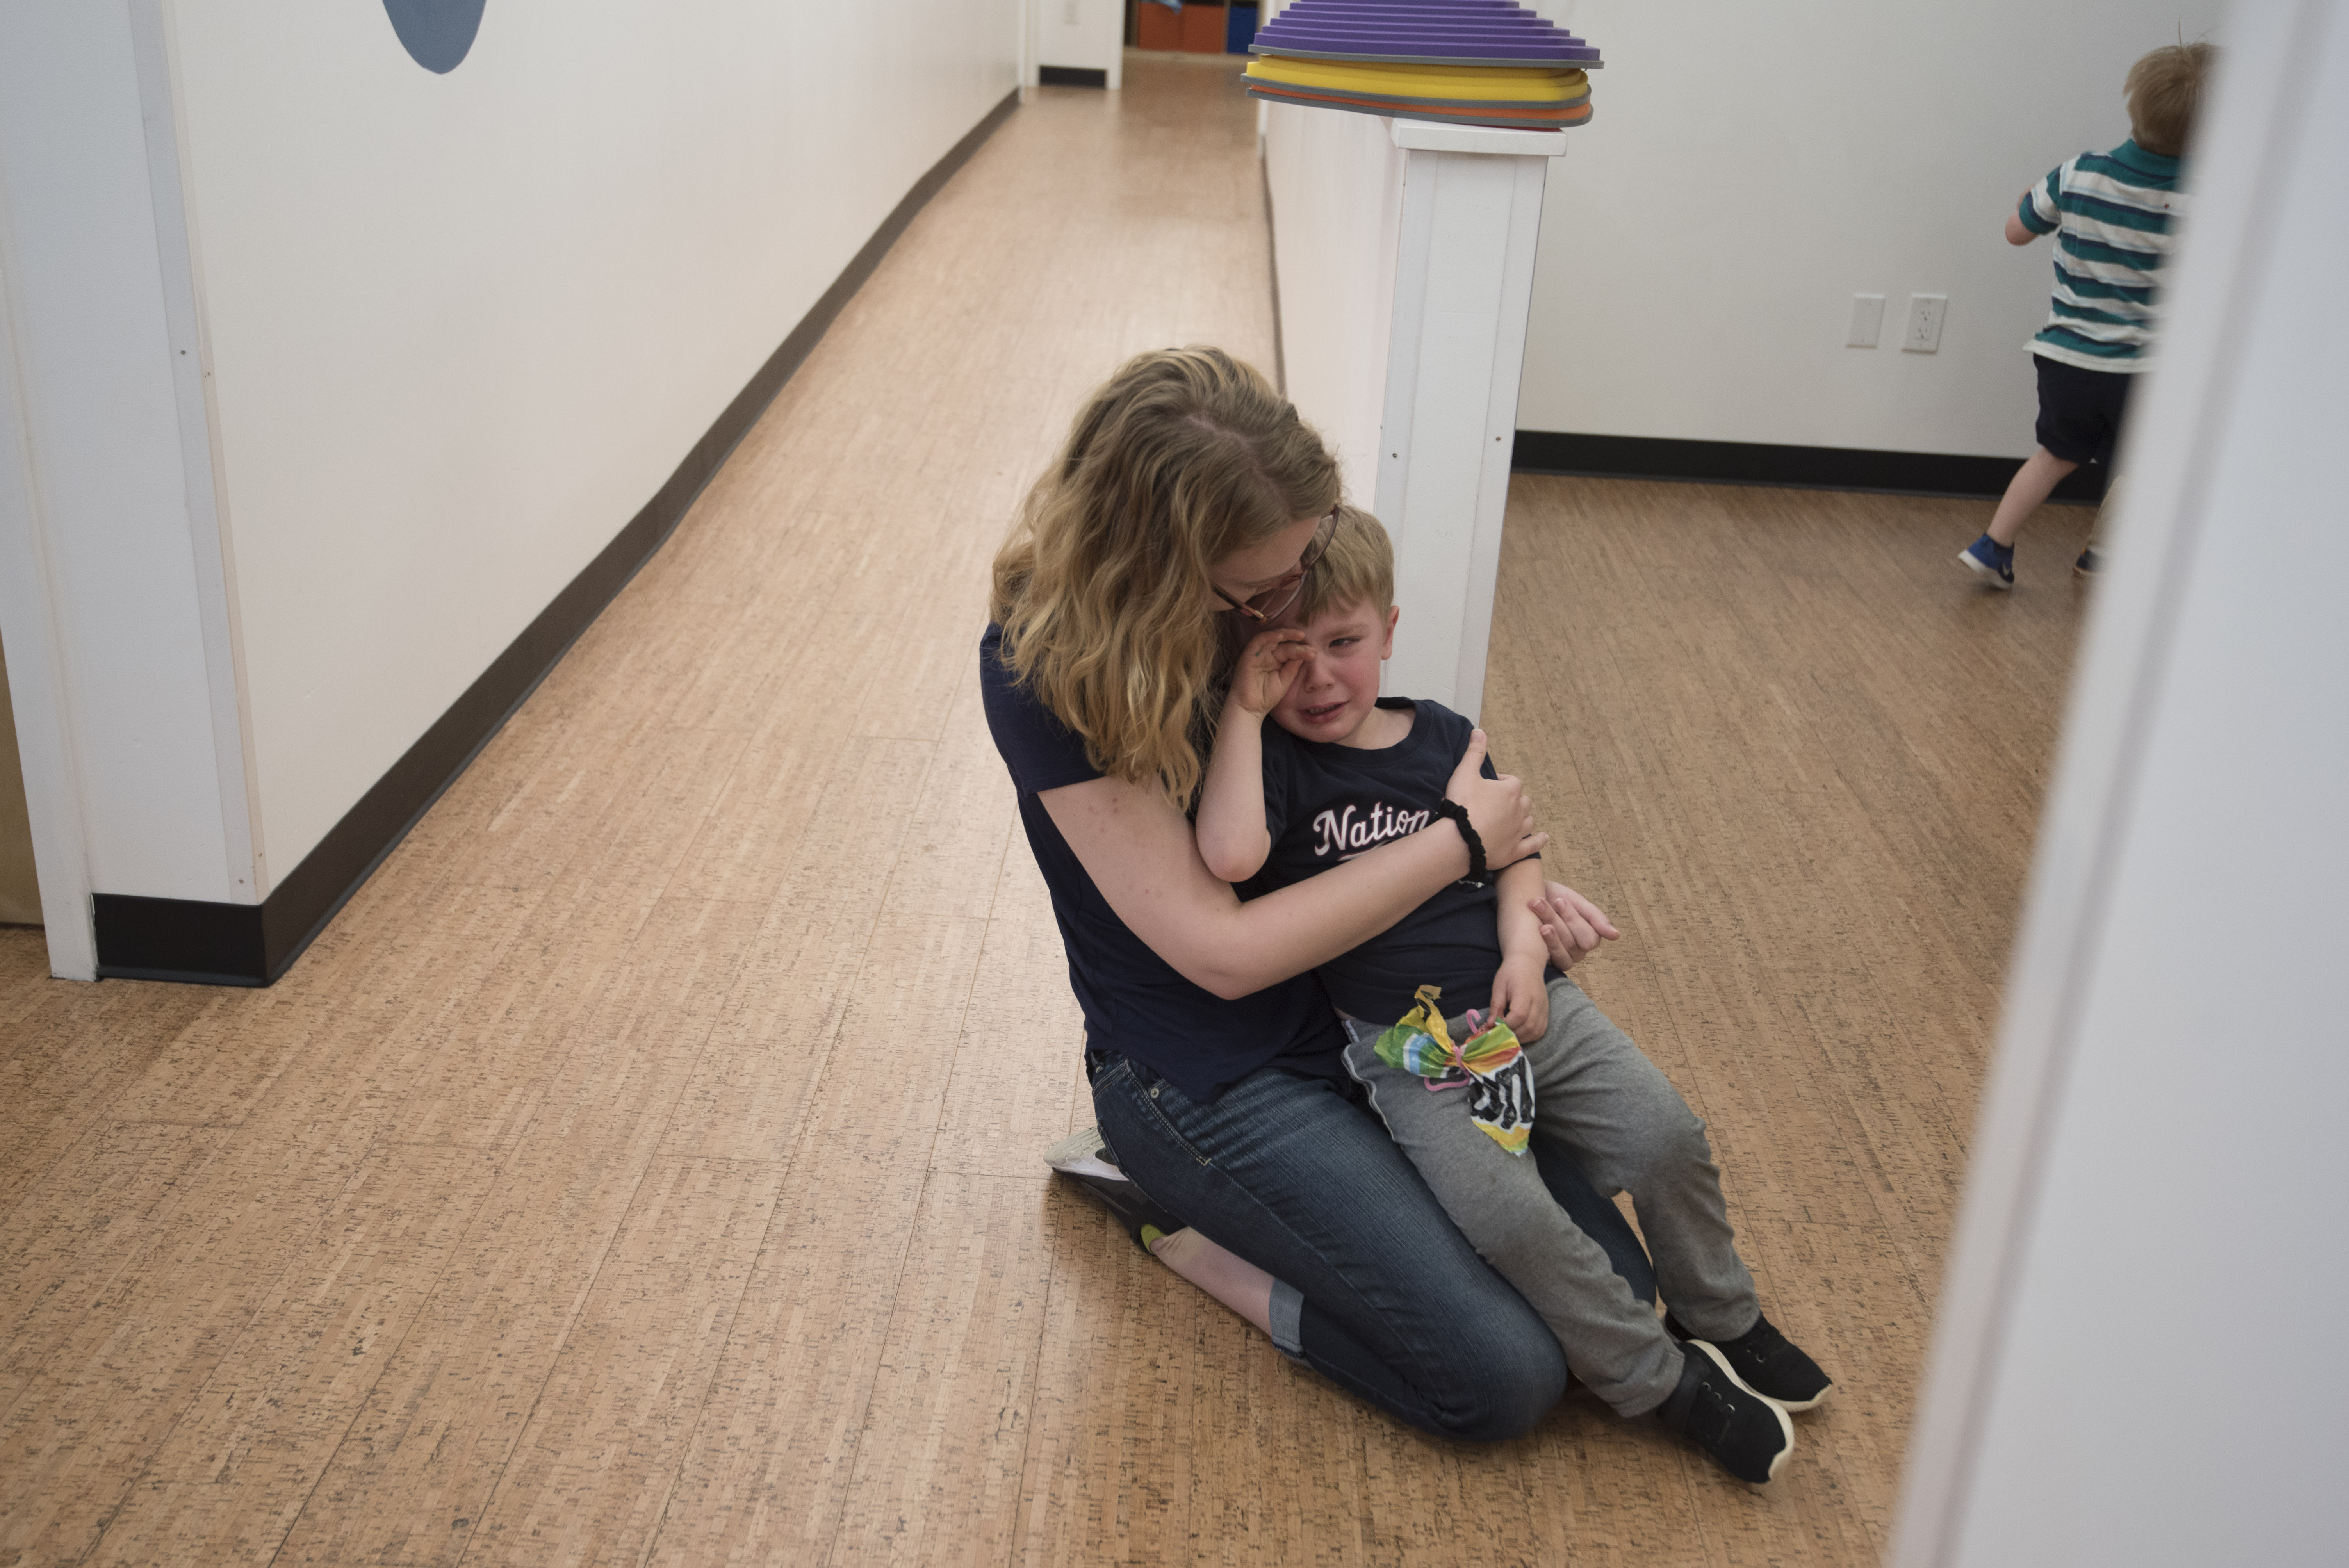 Grieving Children in a Pandemic: How Can Child Care Providers Help?